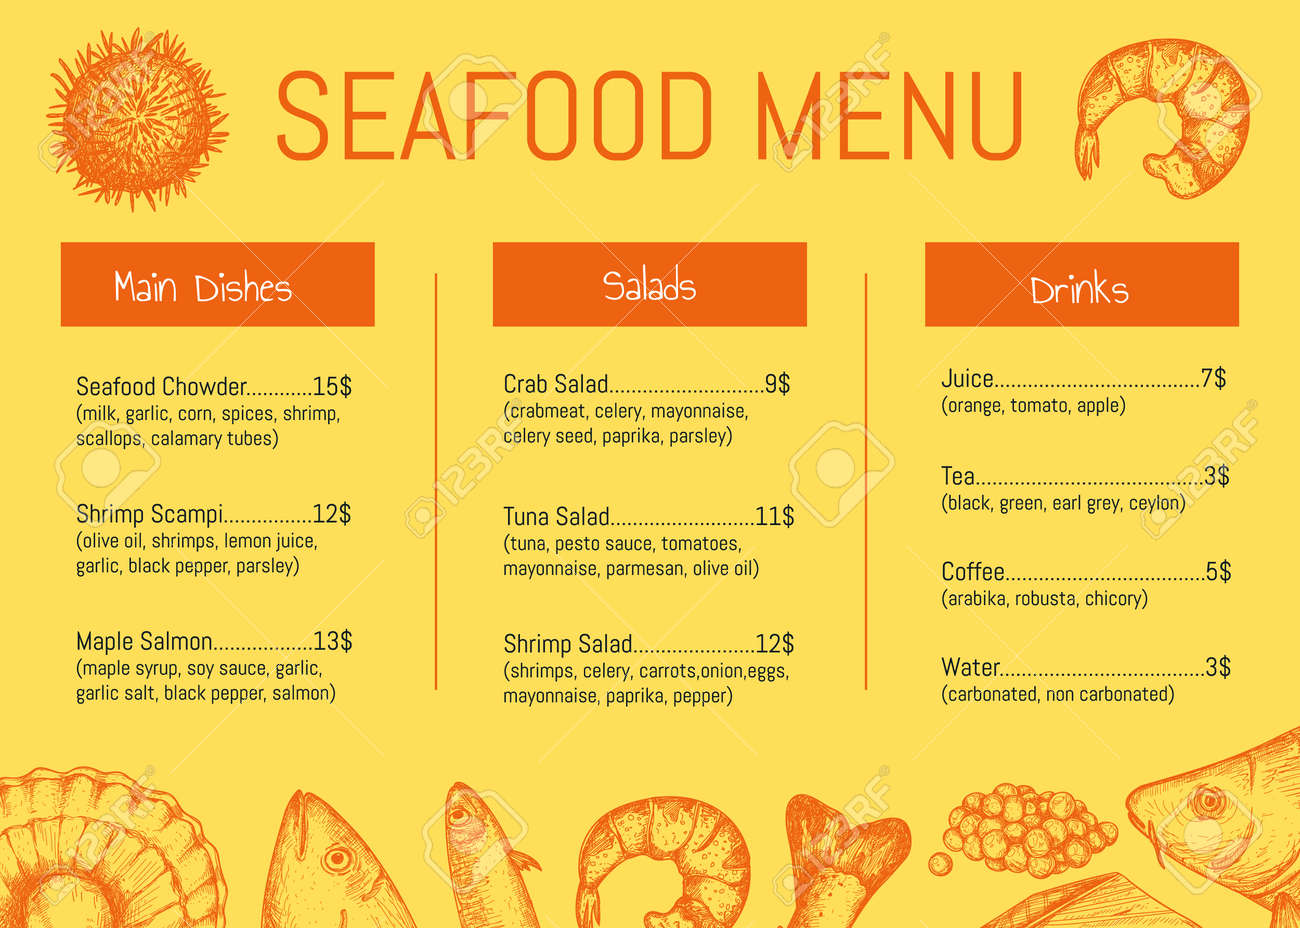 Seafood Restaurant Menu Brochure Template Natural Healthy Meal Royalty Free Cliparts Vectors And Stock Illustration Image 81372374